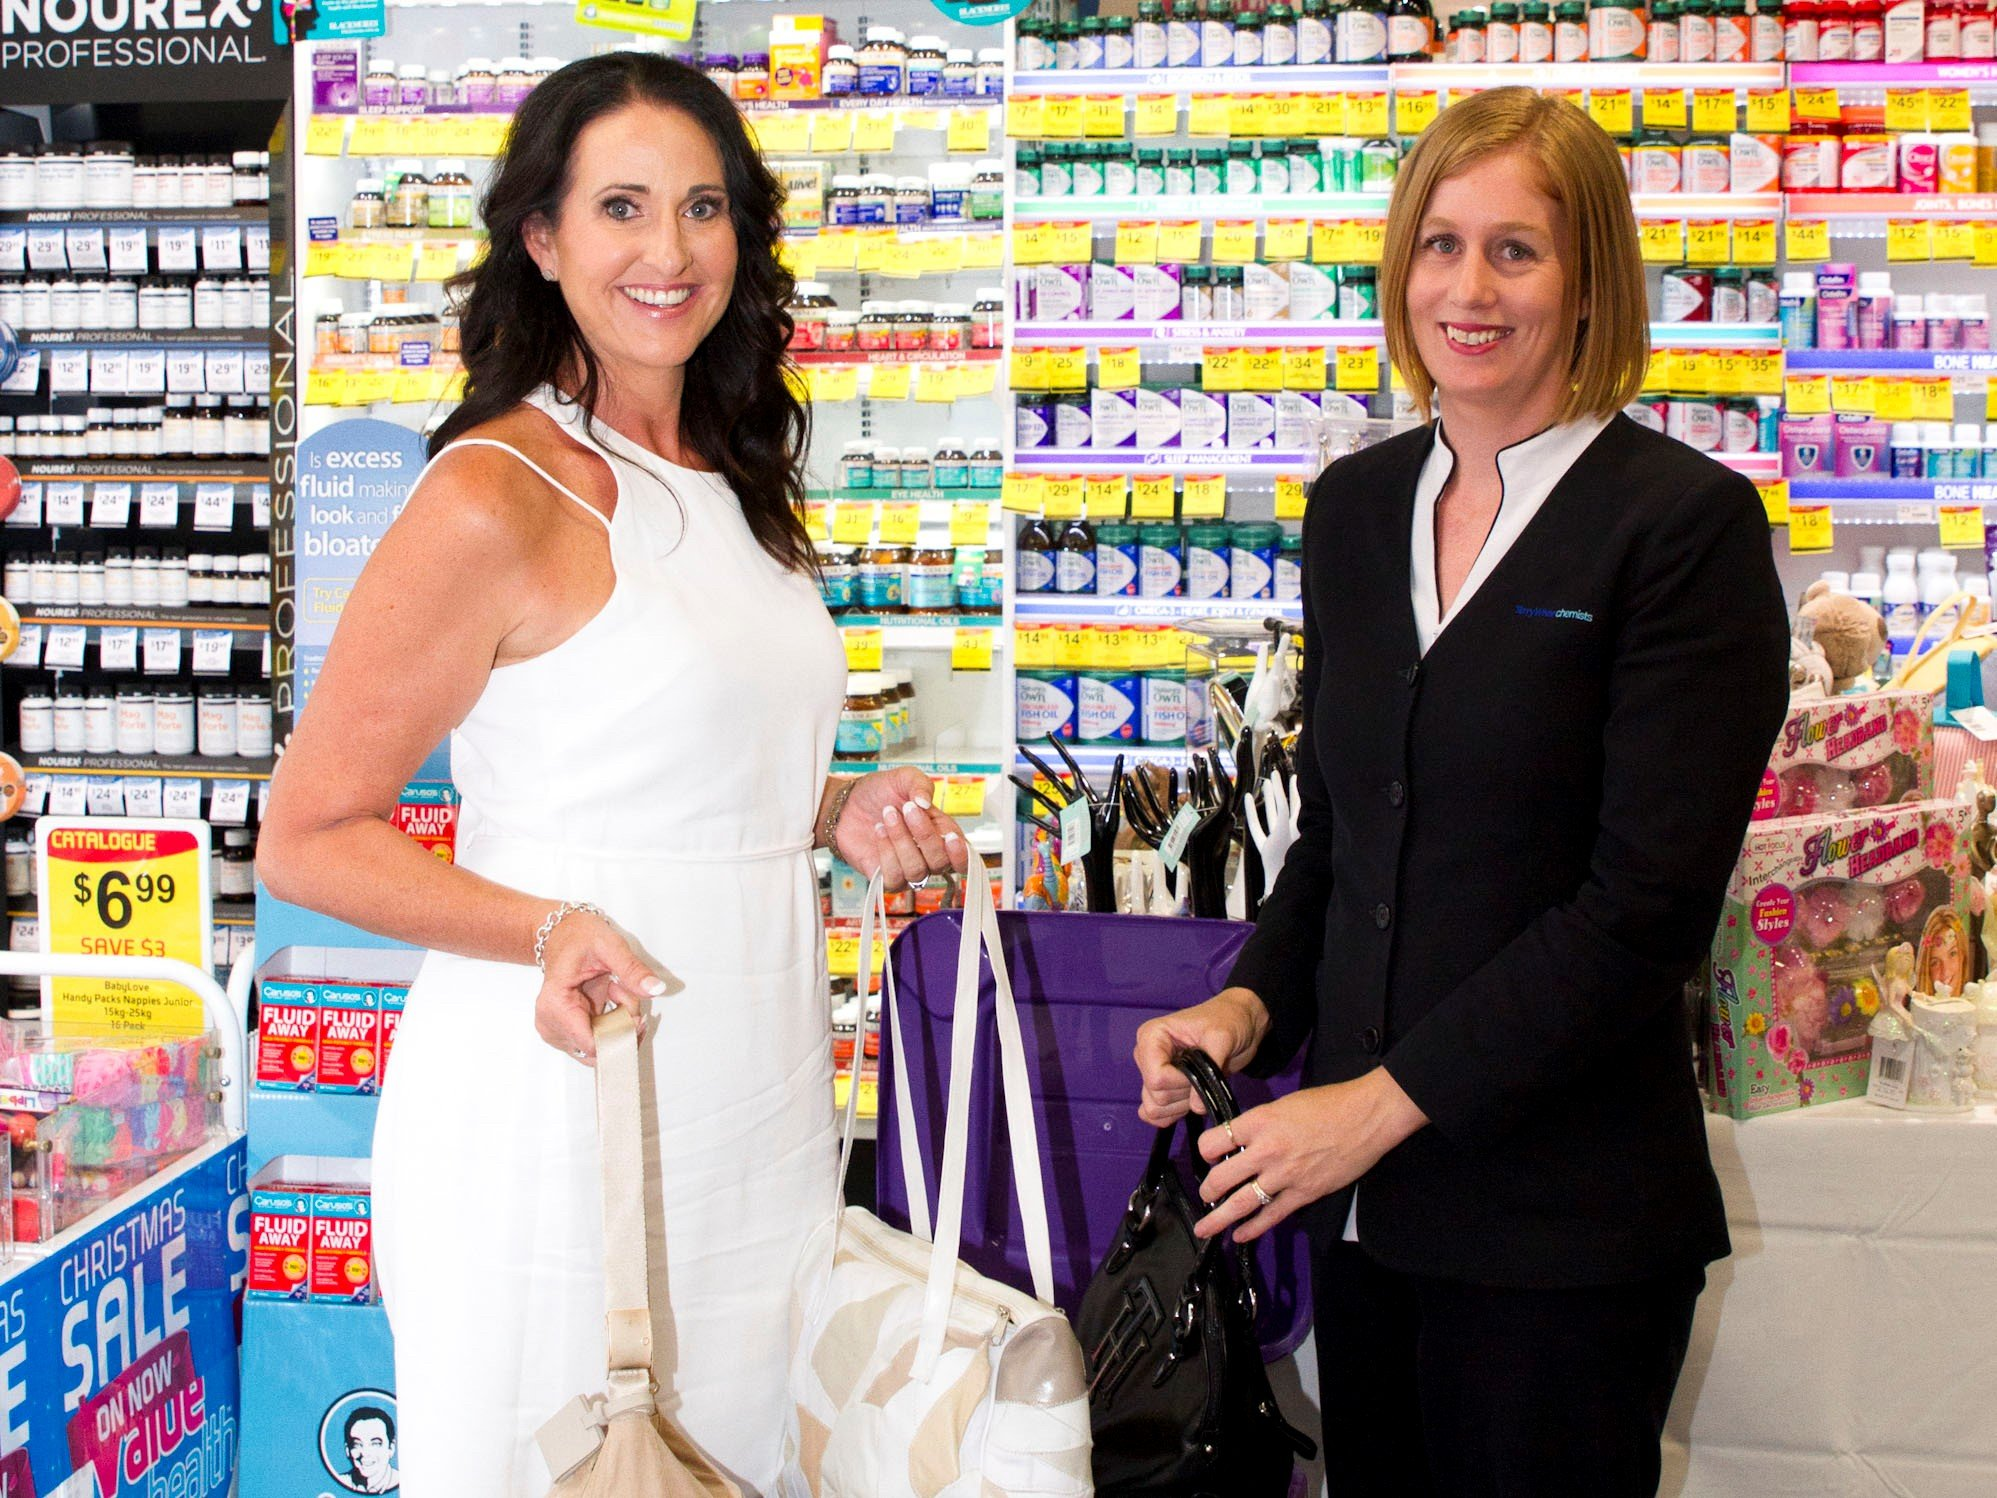 Share the Dignity's Rochelle with Renee from TWC Chermside